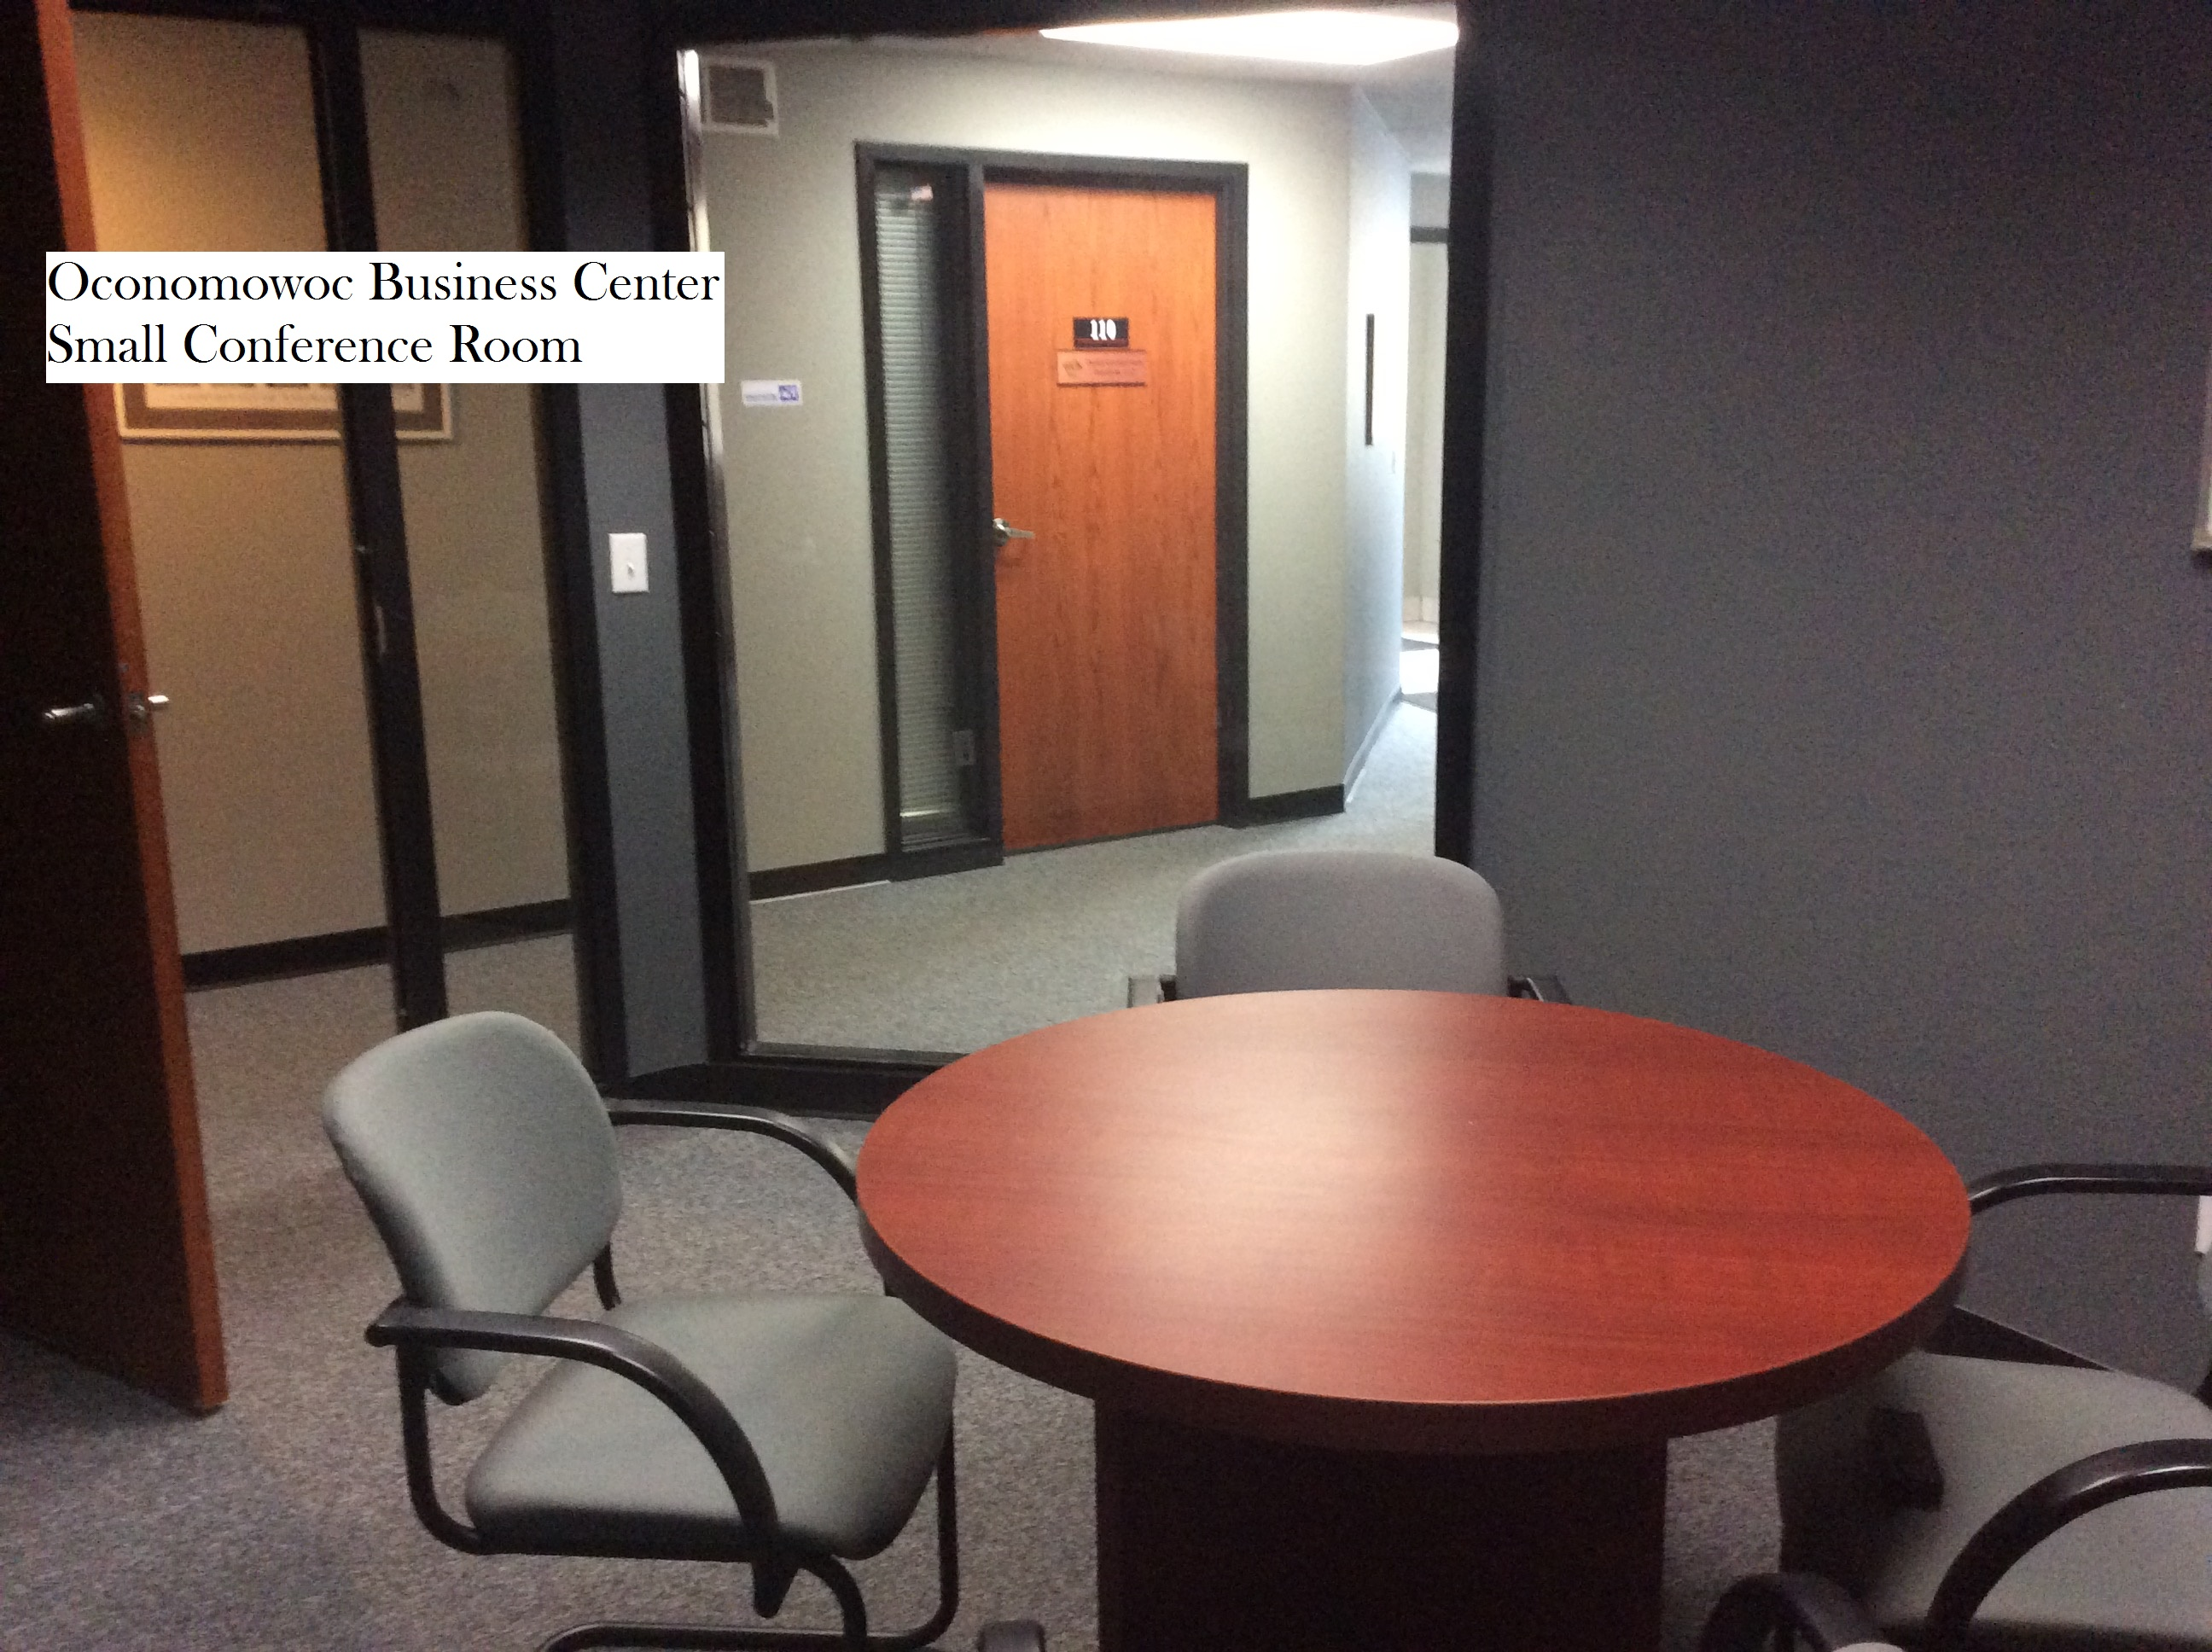 13 Small conference room labelled